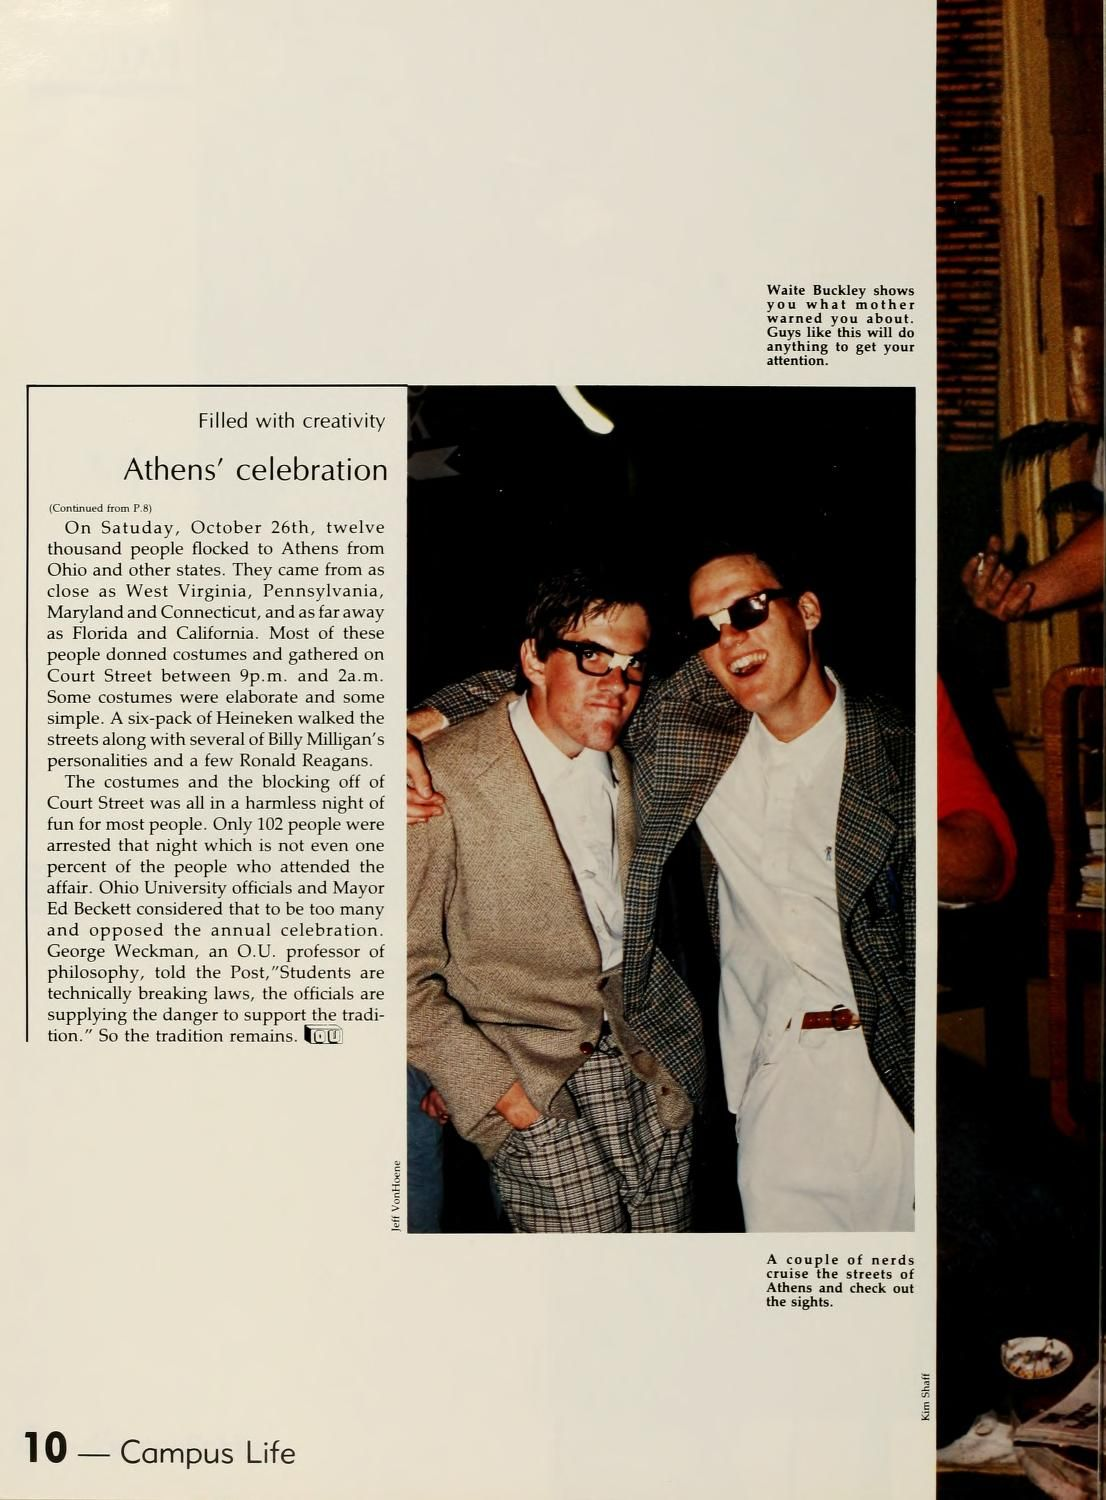 """Athena yearbook, 1986. """"A couple of nerds cruise the streets of Athens and check out the sights"""" at Athens' Halloween party. :: Ohio University Archives"""